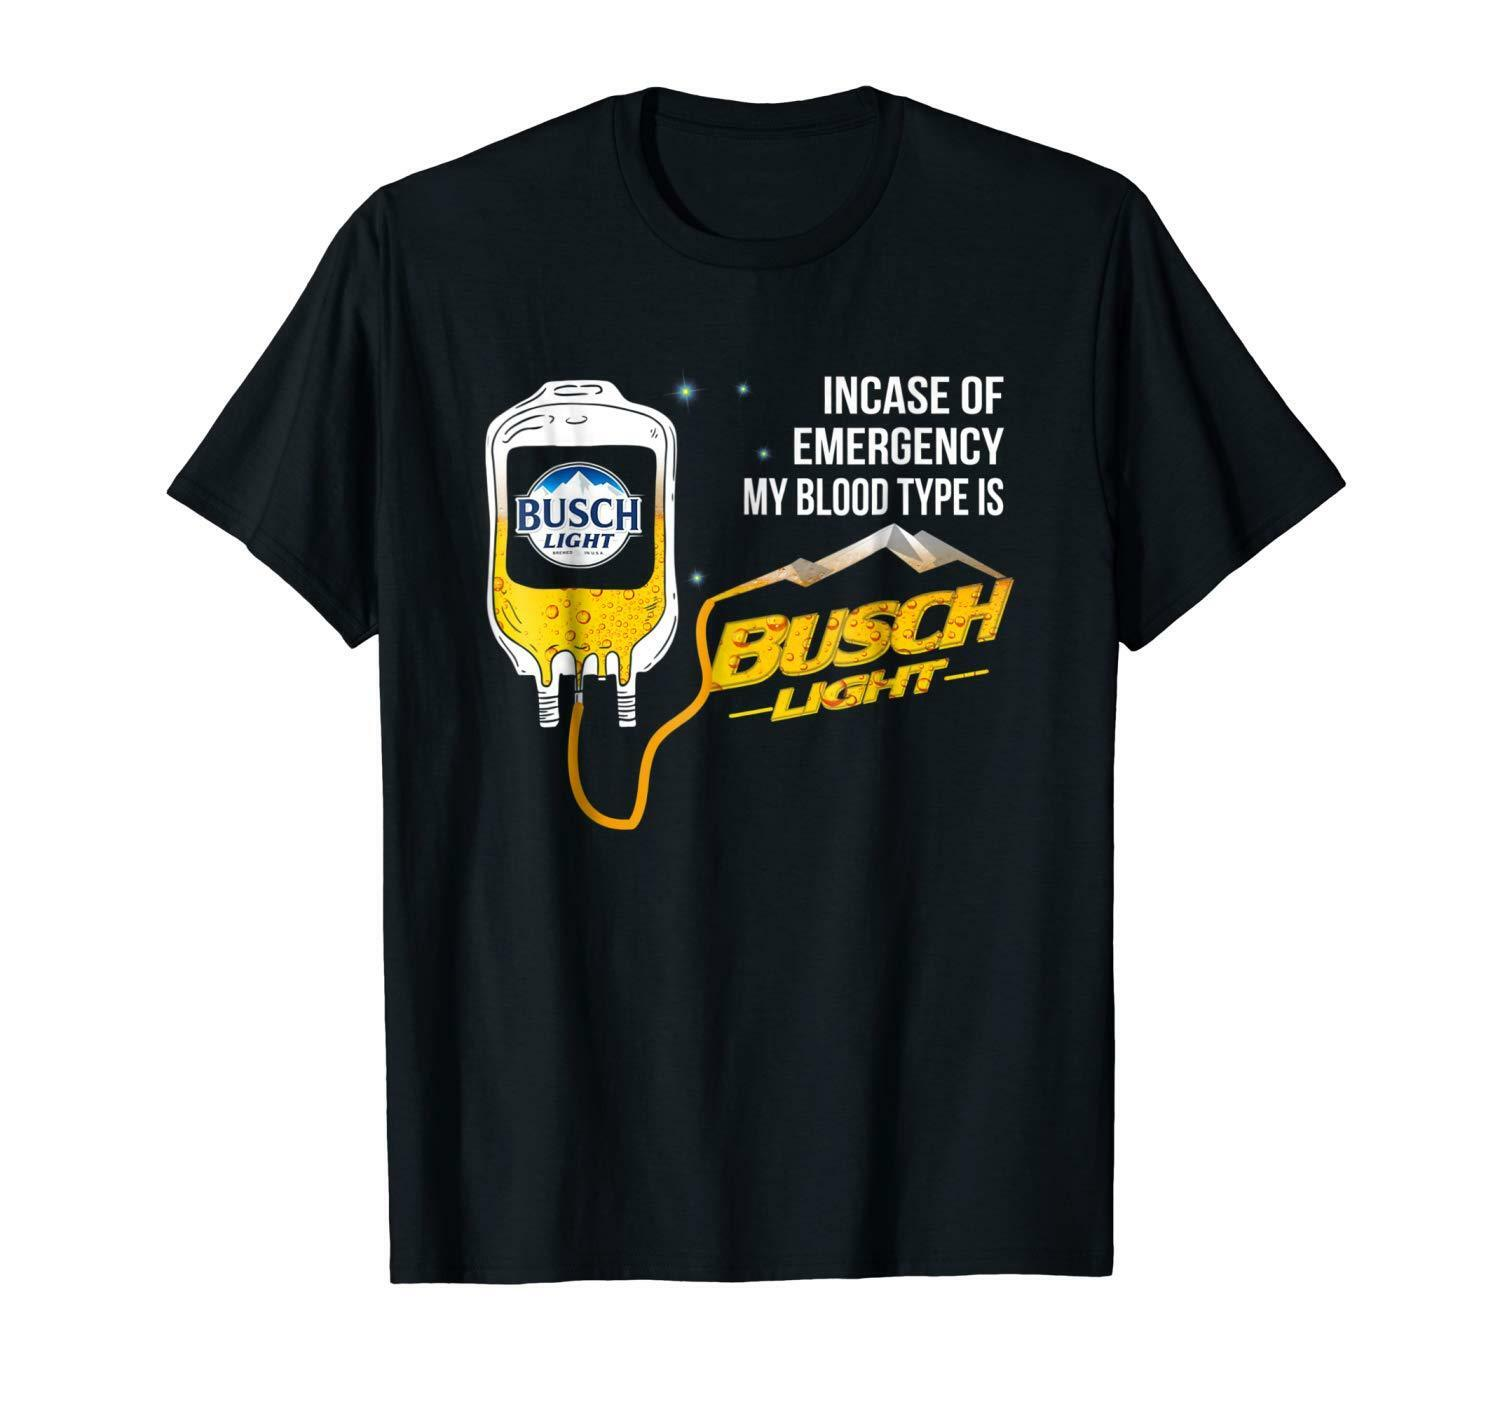 In Case Of Emergency My Blood Type Is Busch Beer Lights Black T-Shirt S-3XL High Quality Tee Shirt